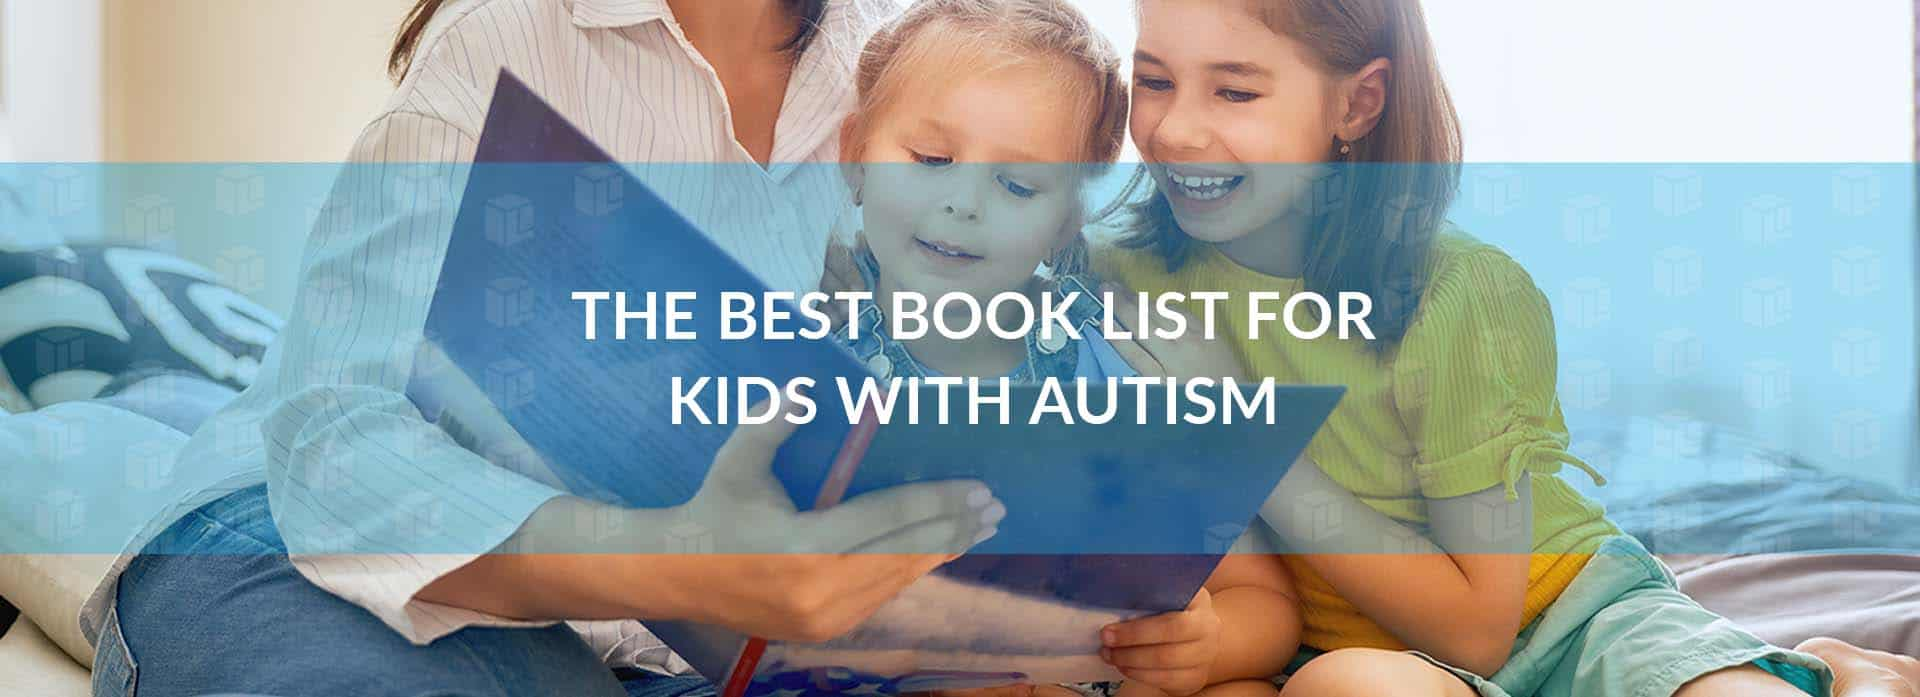 The Best Book List For Kids With Autism